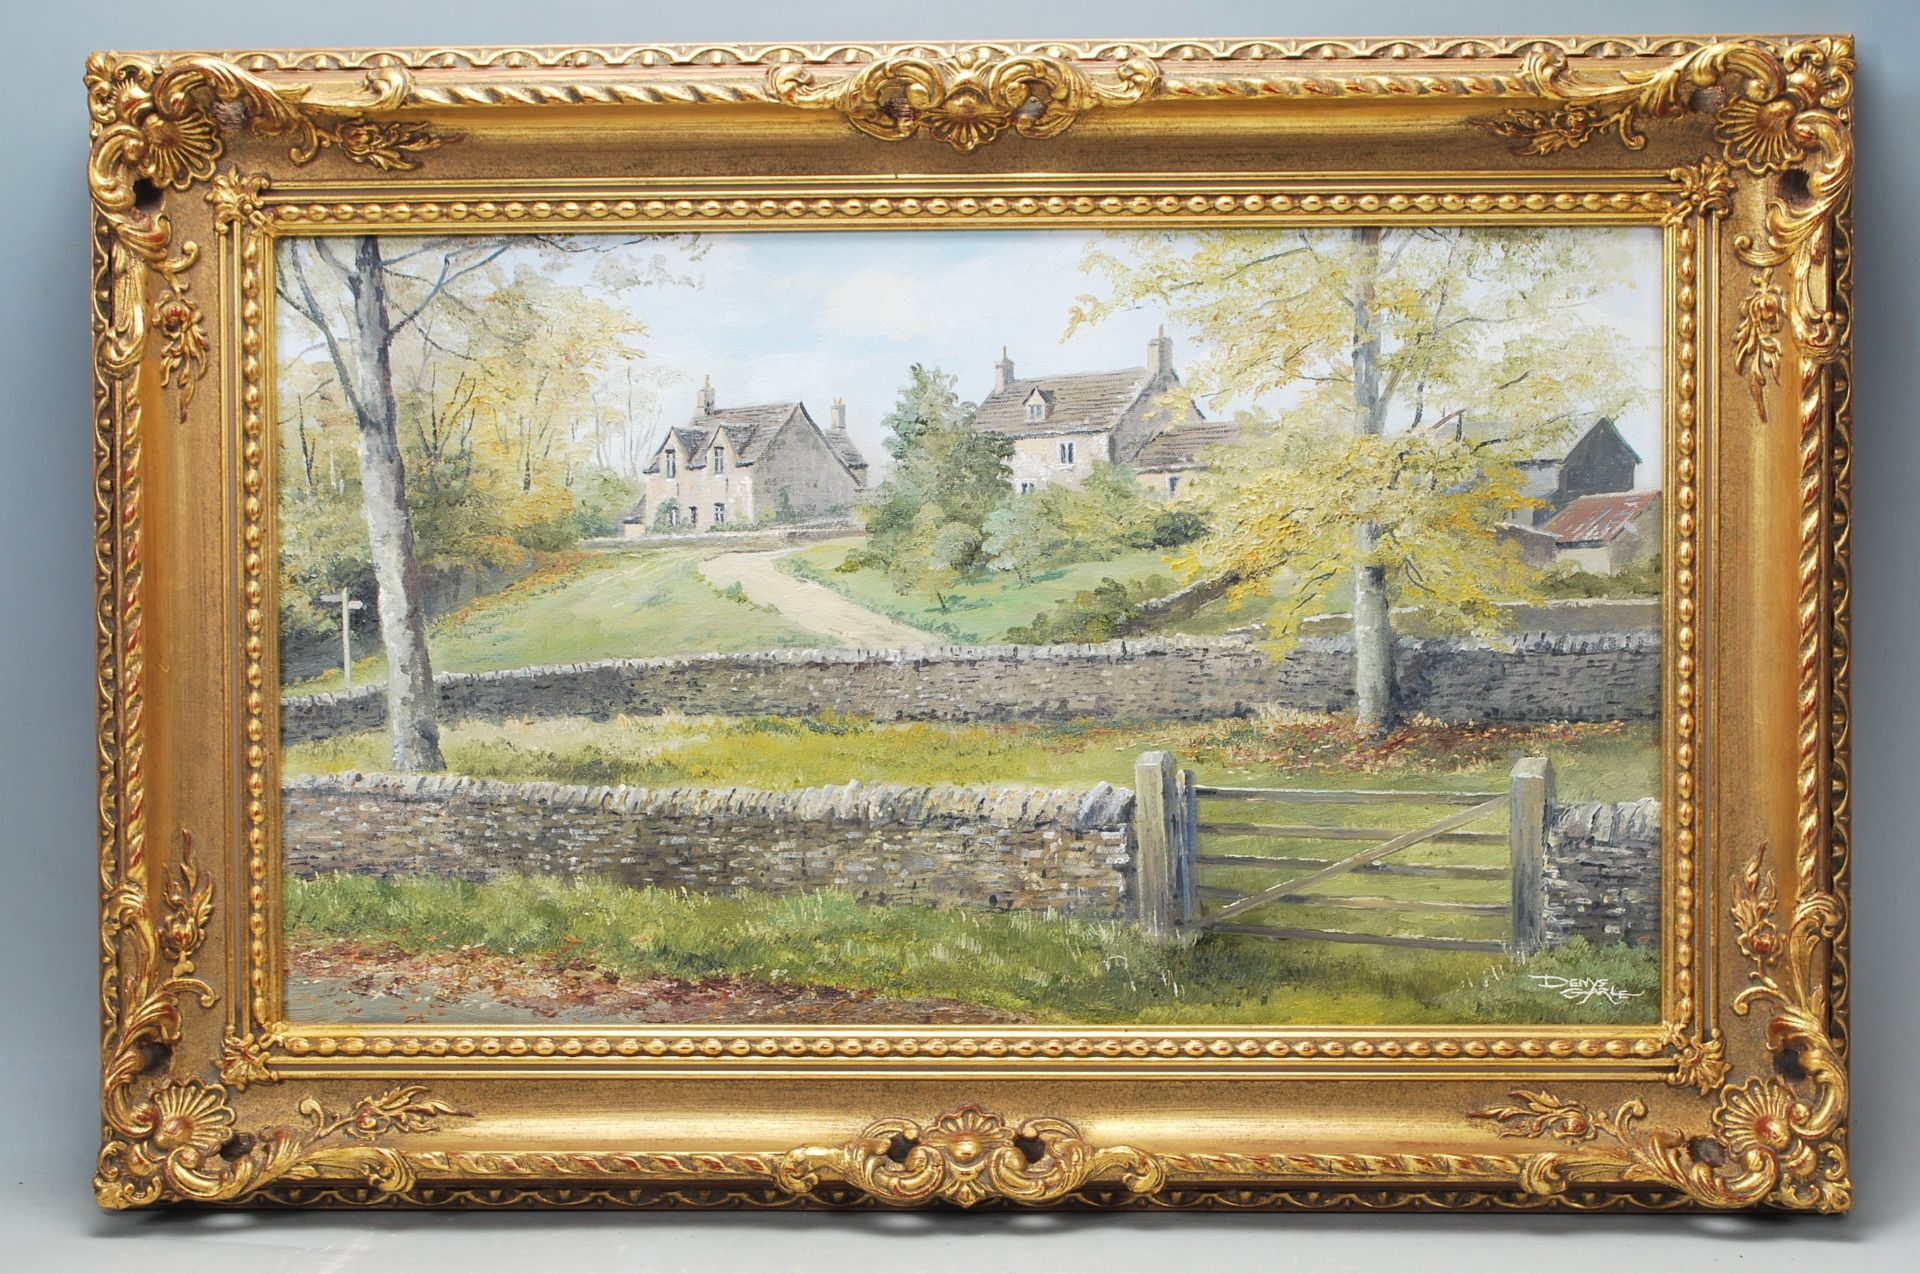 A VINTAGE OIL ON CANVAS PAINTING BY DENYS GARLE DEPICTING A LANDSCAPE